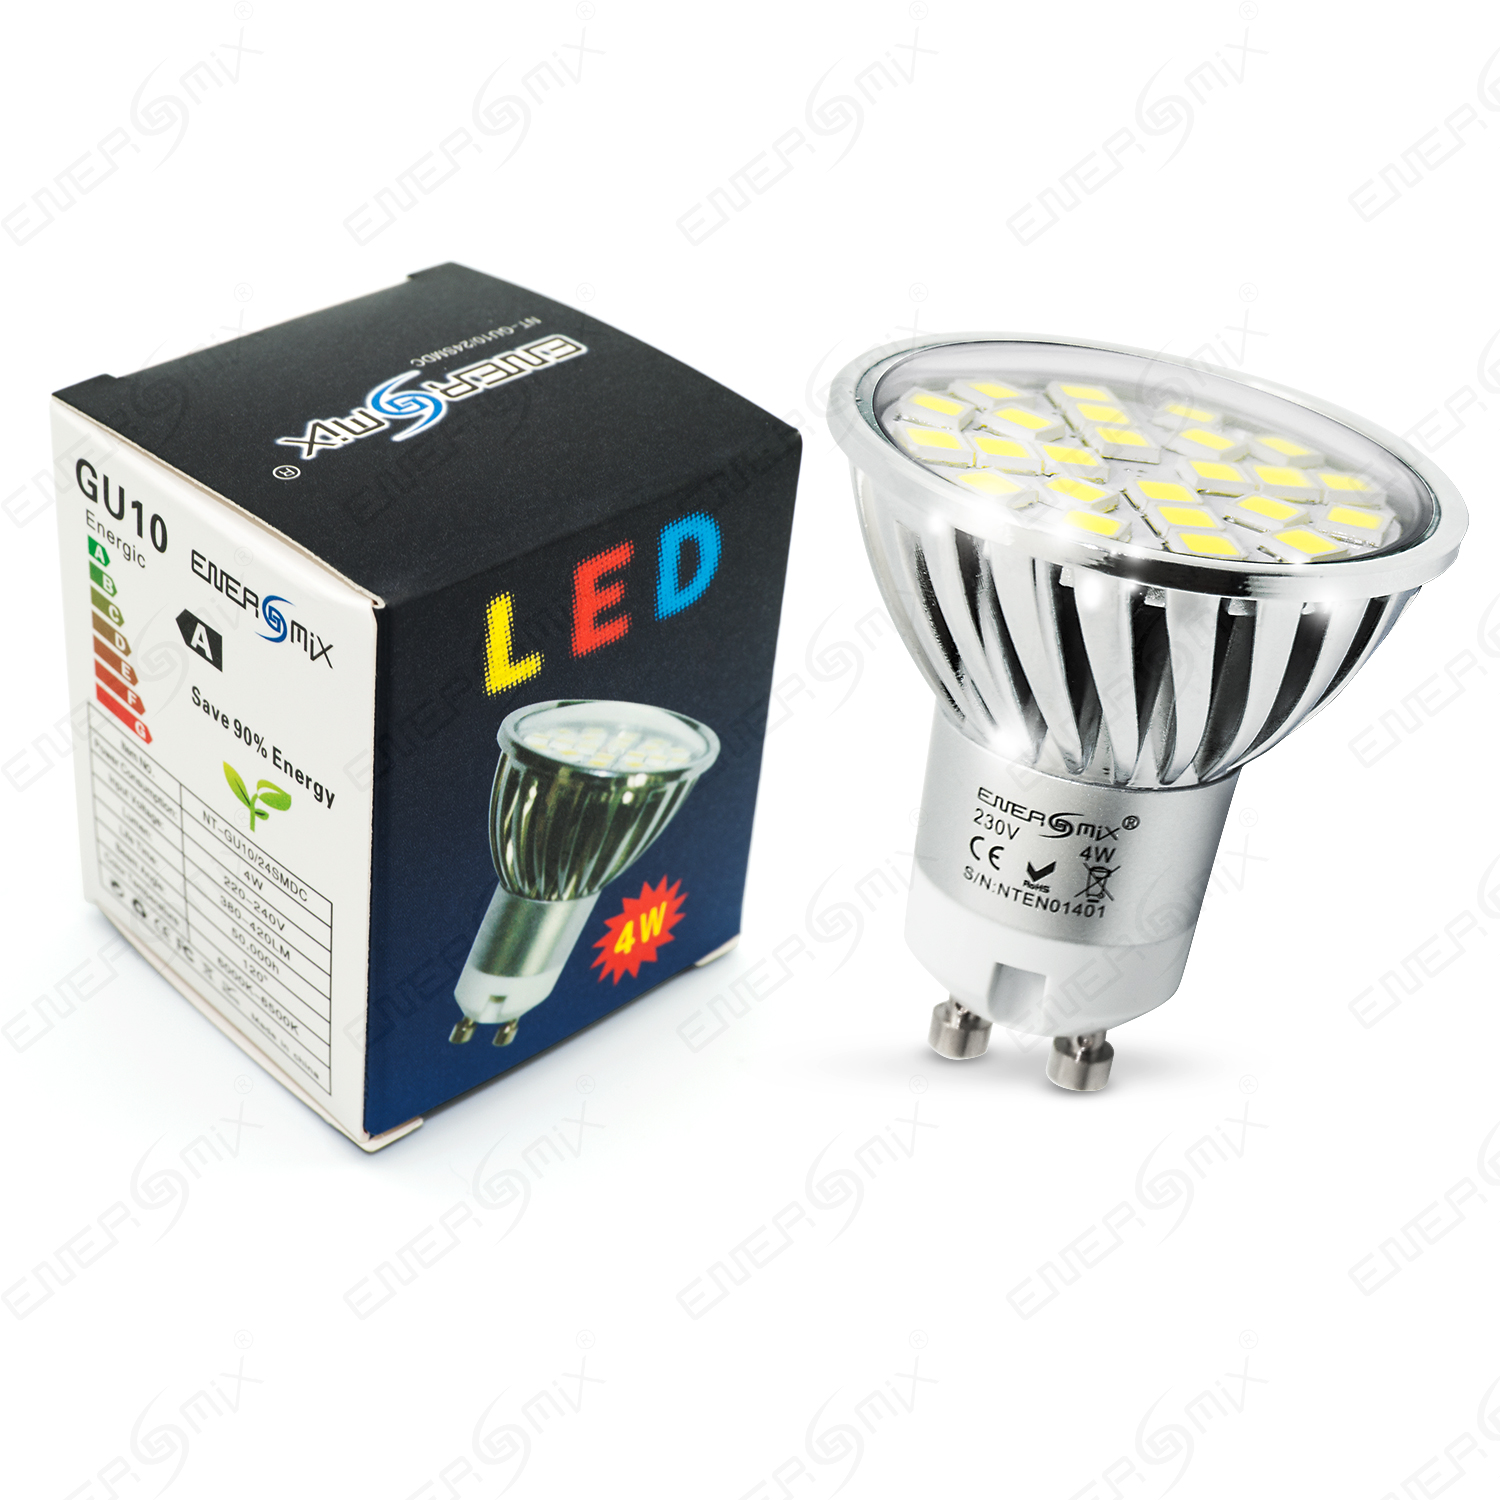 led lampe gu10 spot mit 5050 smd alu gehause mit schutzglas 4w ebay. Black Bedroom Furniture Sets. Home Design Ideas